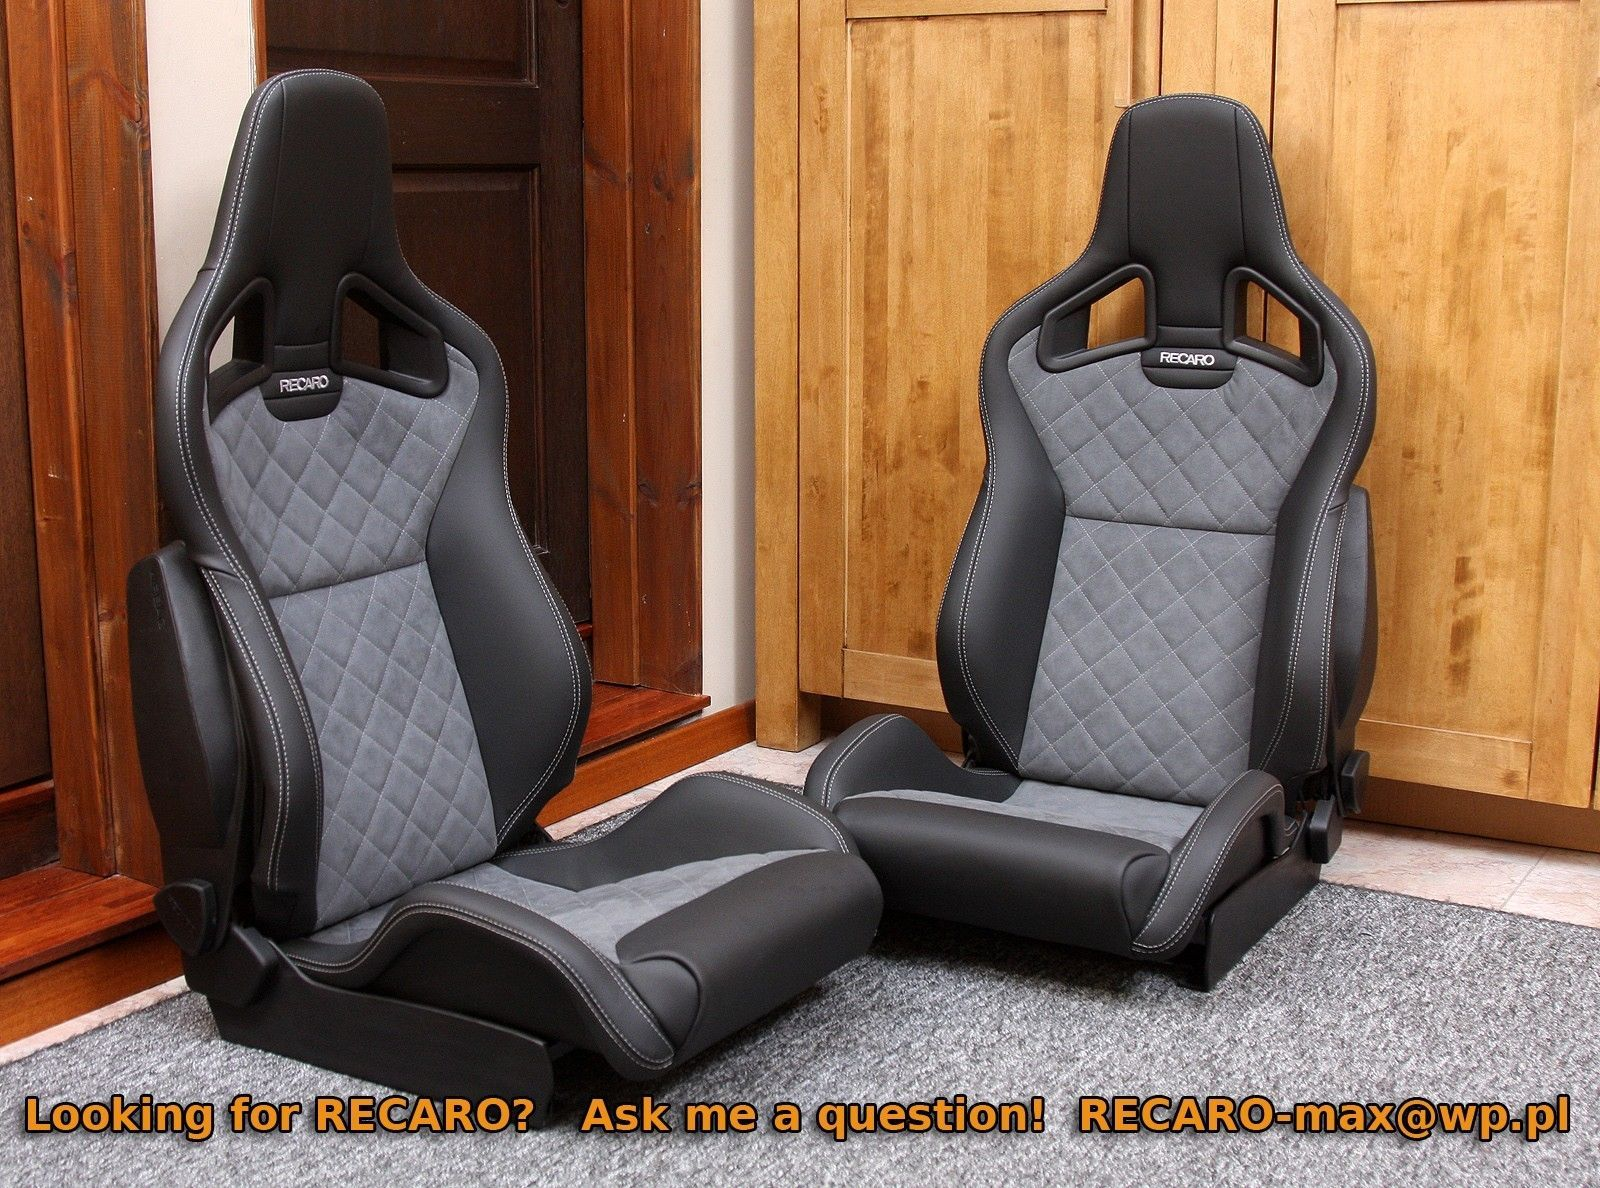 recaro sportster cs airbag many options bmw sti evo. Black Bedroom Furniture Sets. Home Design Ideas